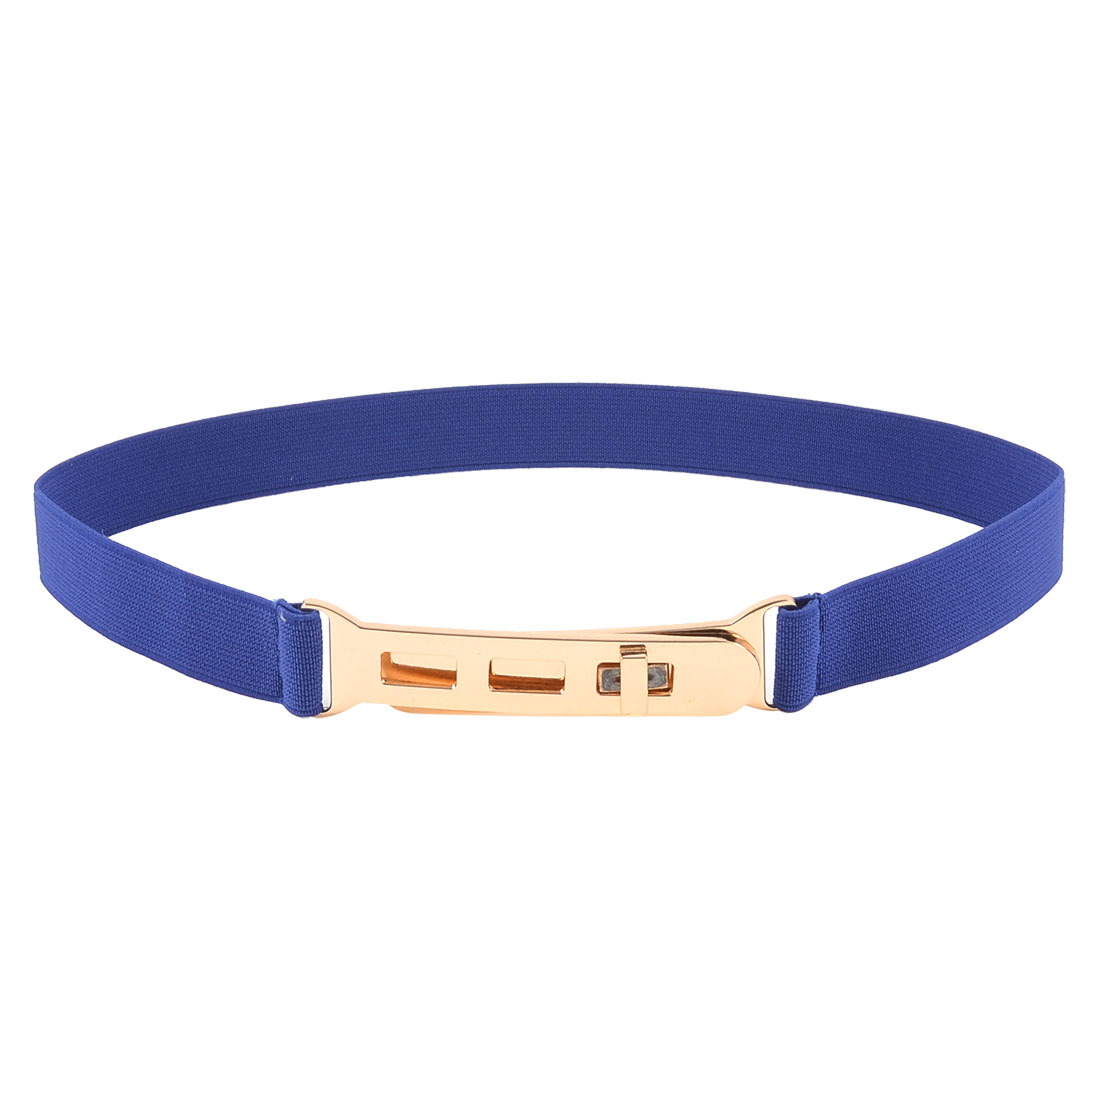 Blue Elastic Fabric Band Copper Tone Metal Turning Lock Buckle Belt